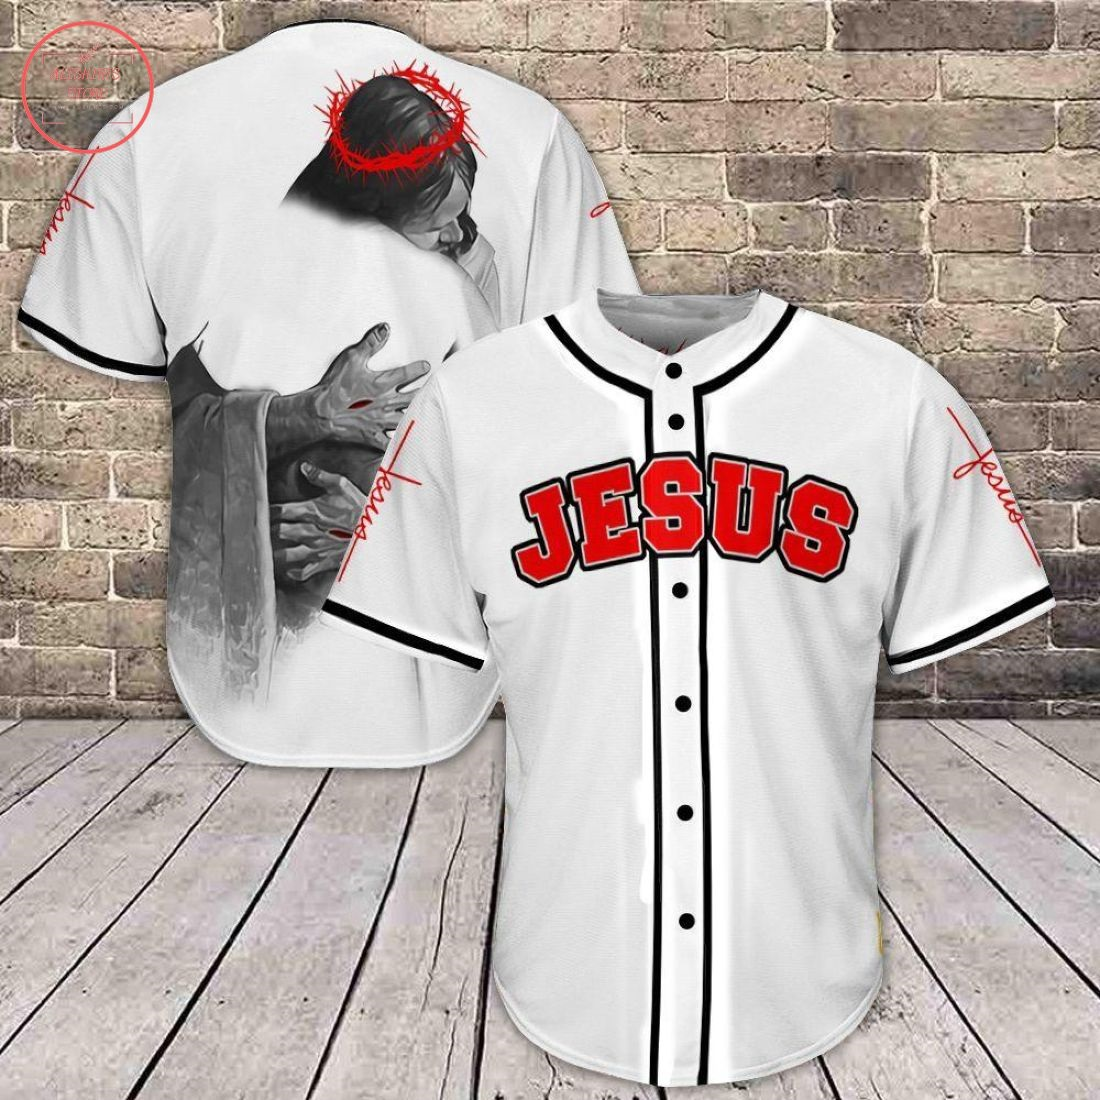 Jesus in The Arms of Lord Baseball Jersey